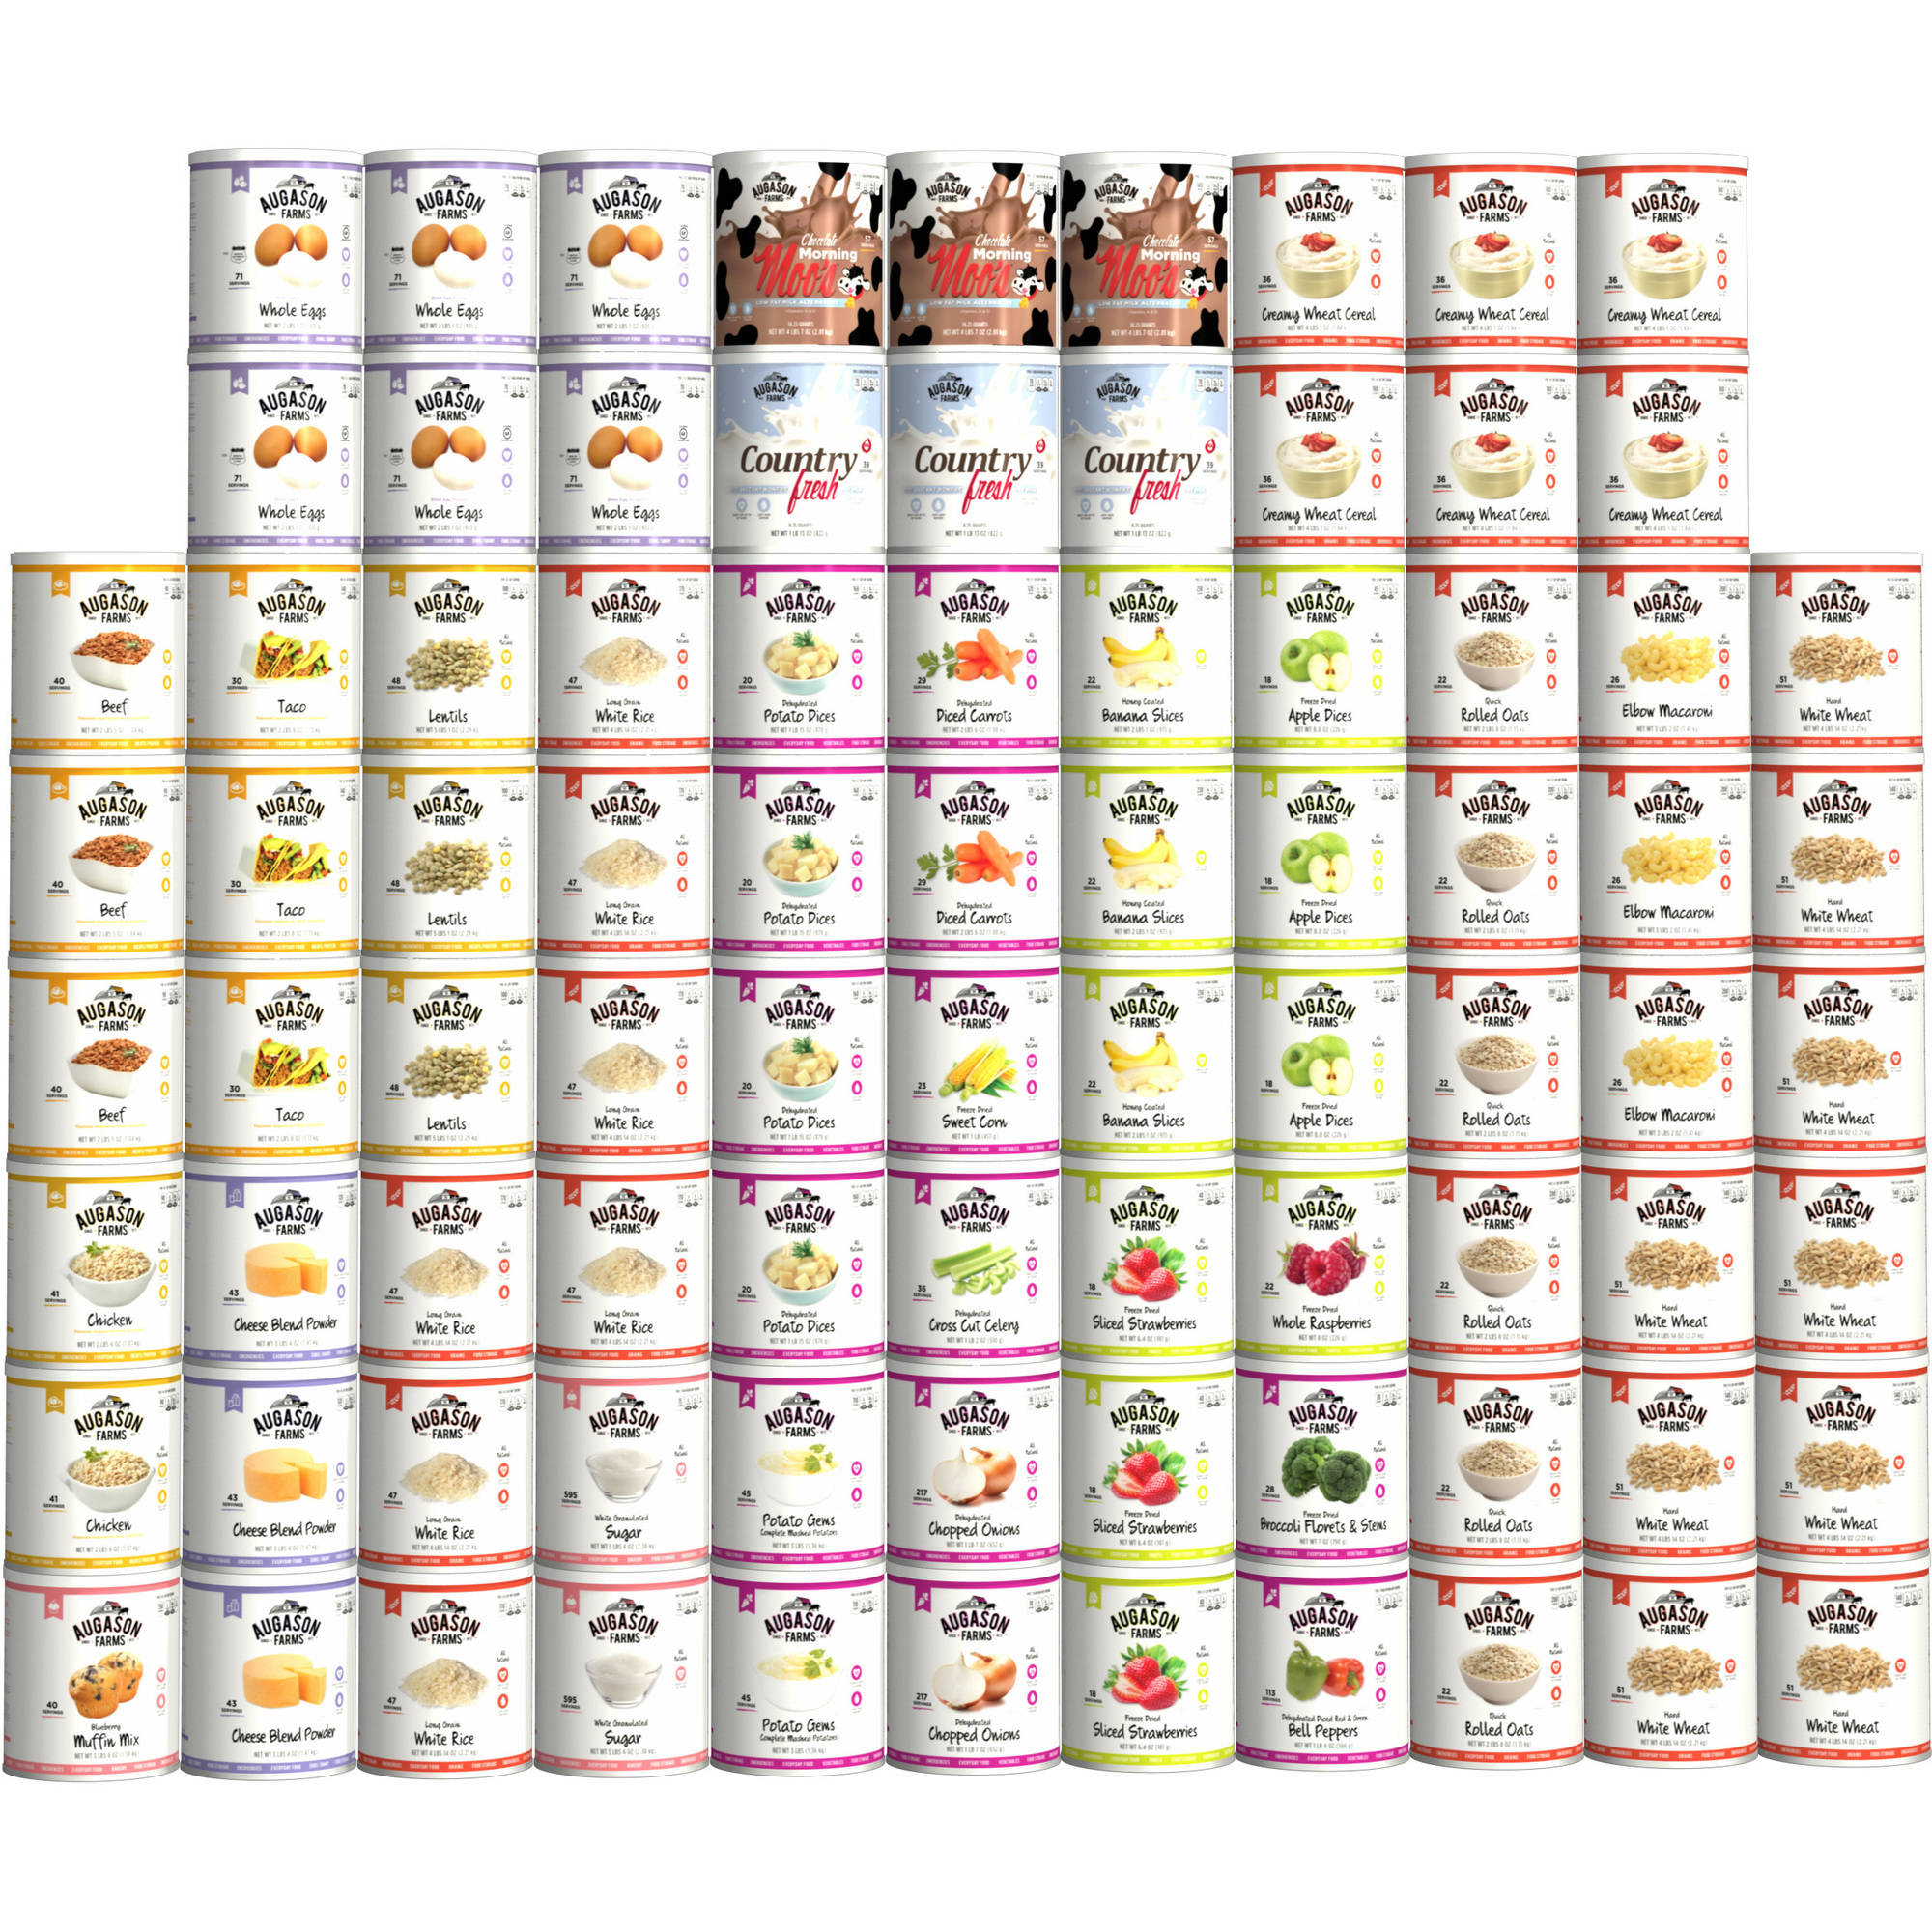 Augason Farms 1-Year, 1-Person Emergency Food Storage Kit, 84 count